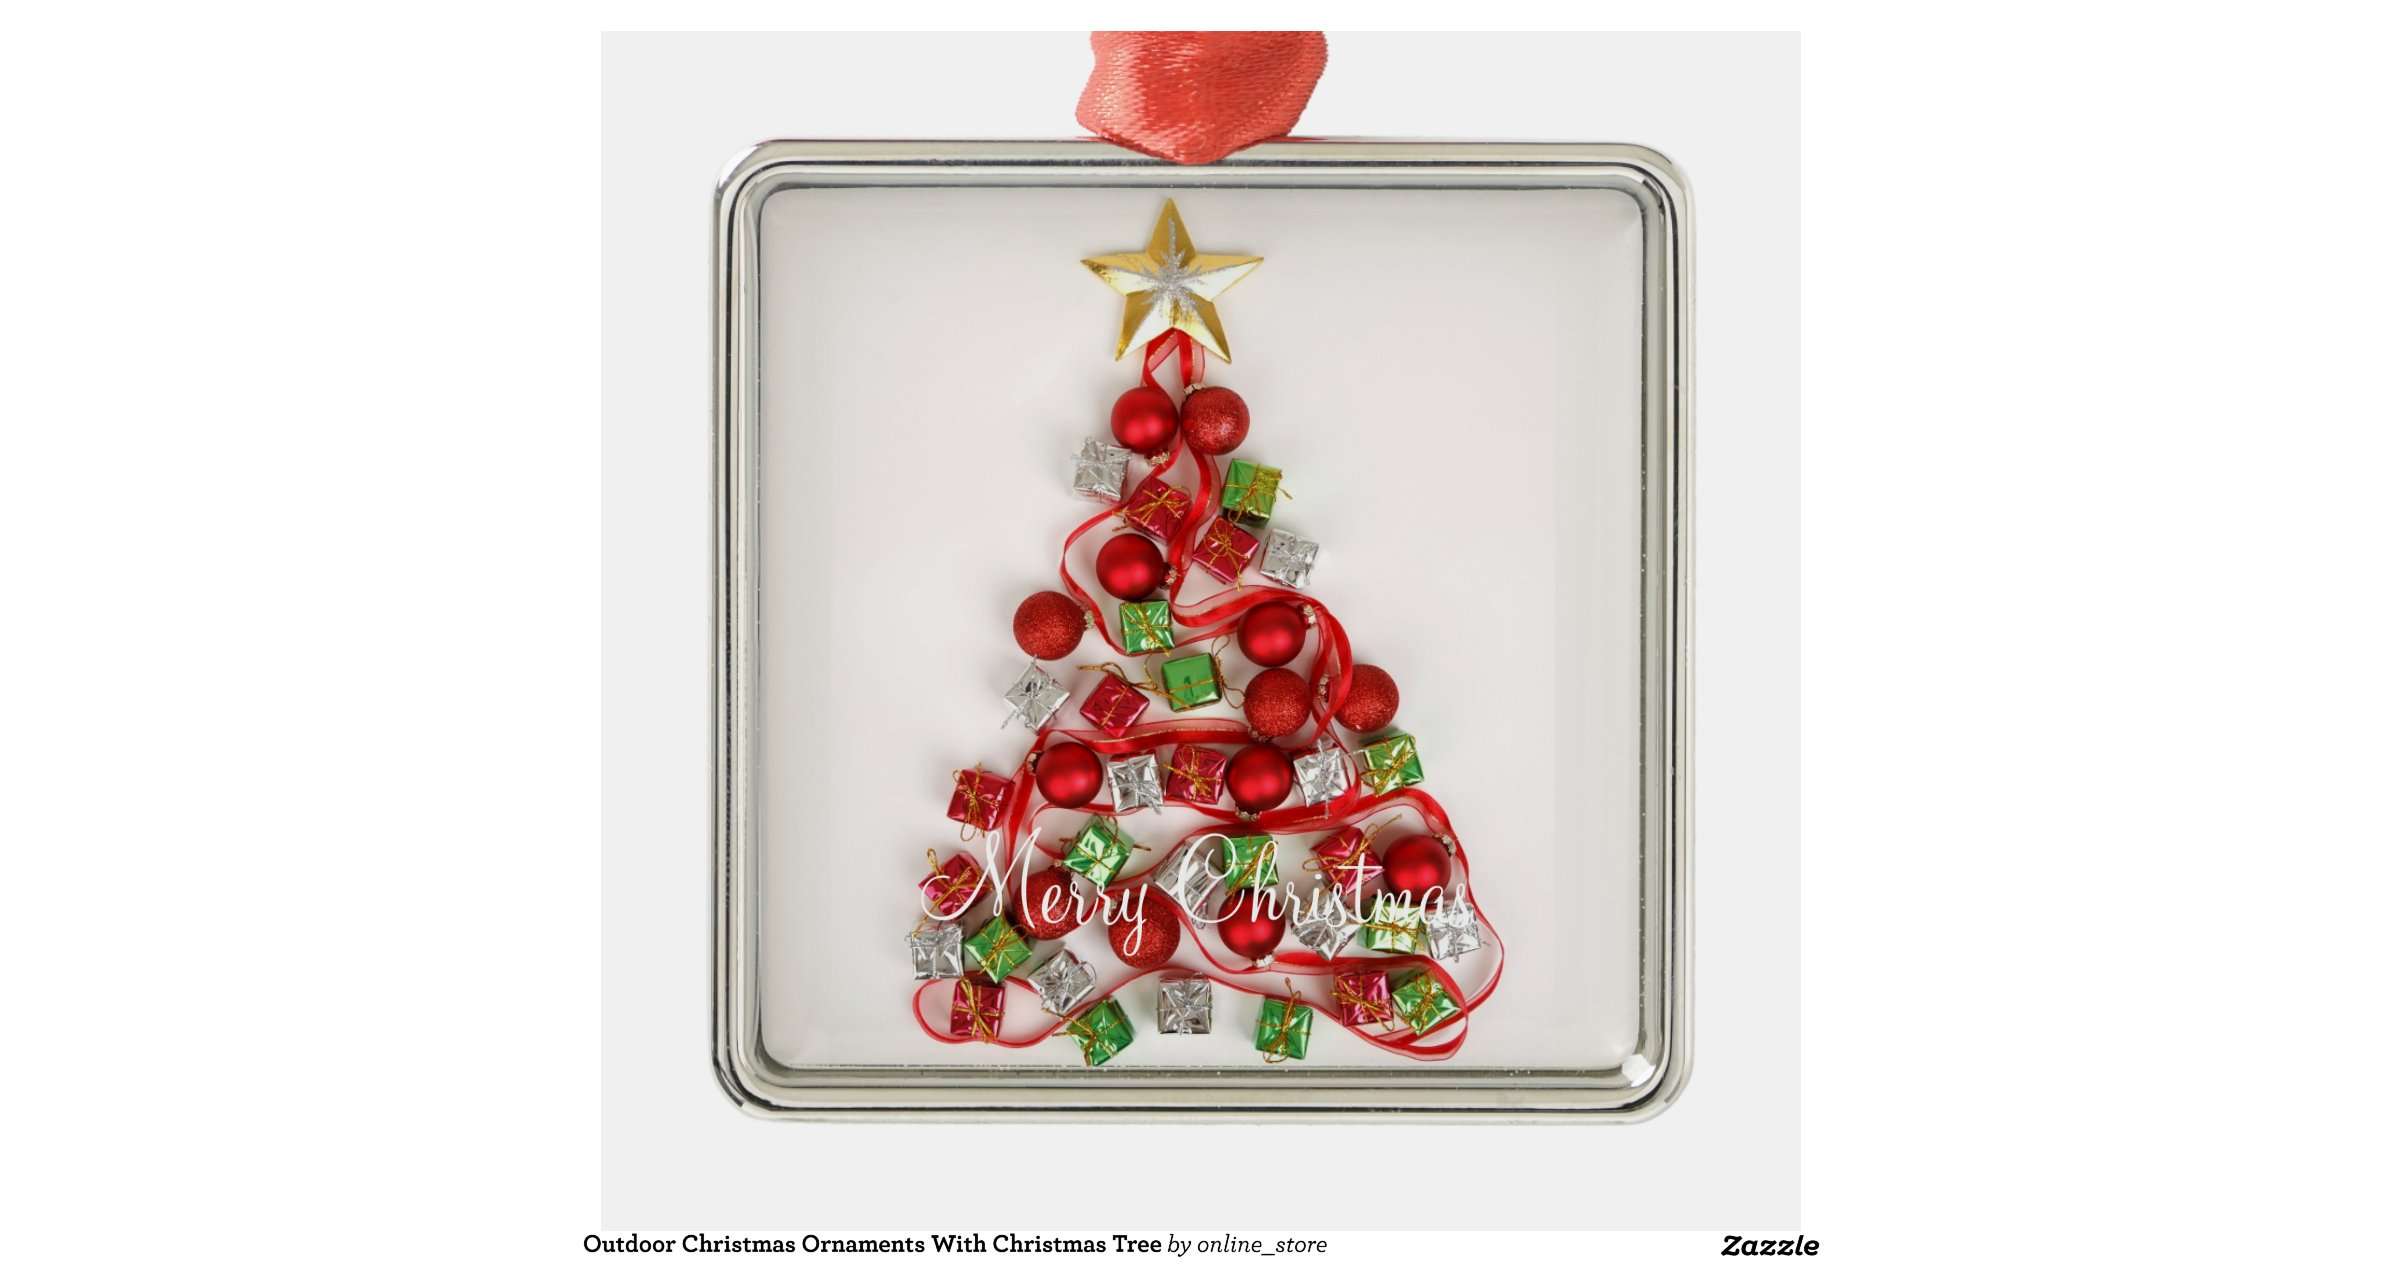 outdoor_christmas_ornaments_with_christmas_tree ...